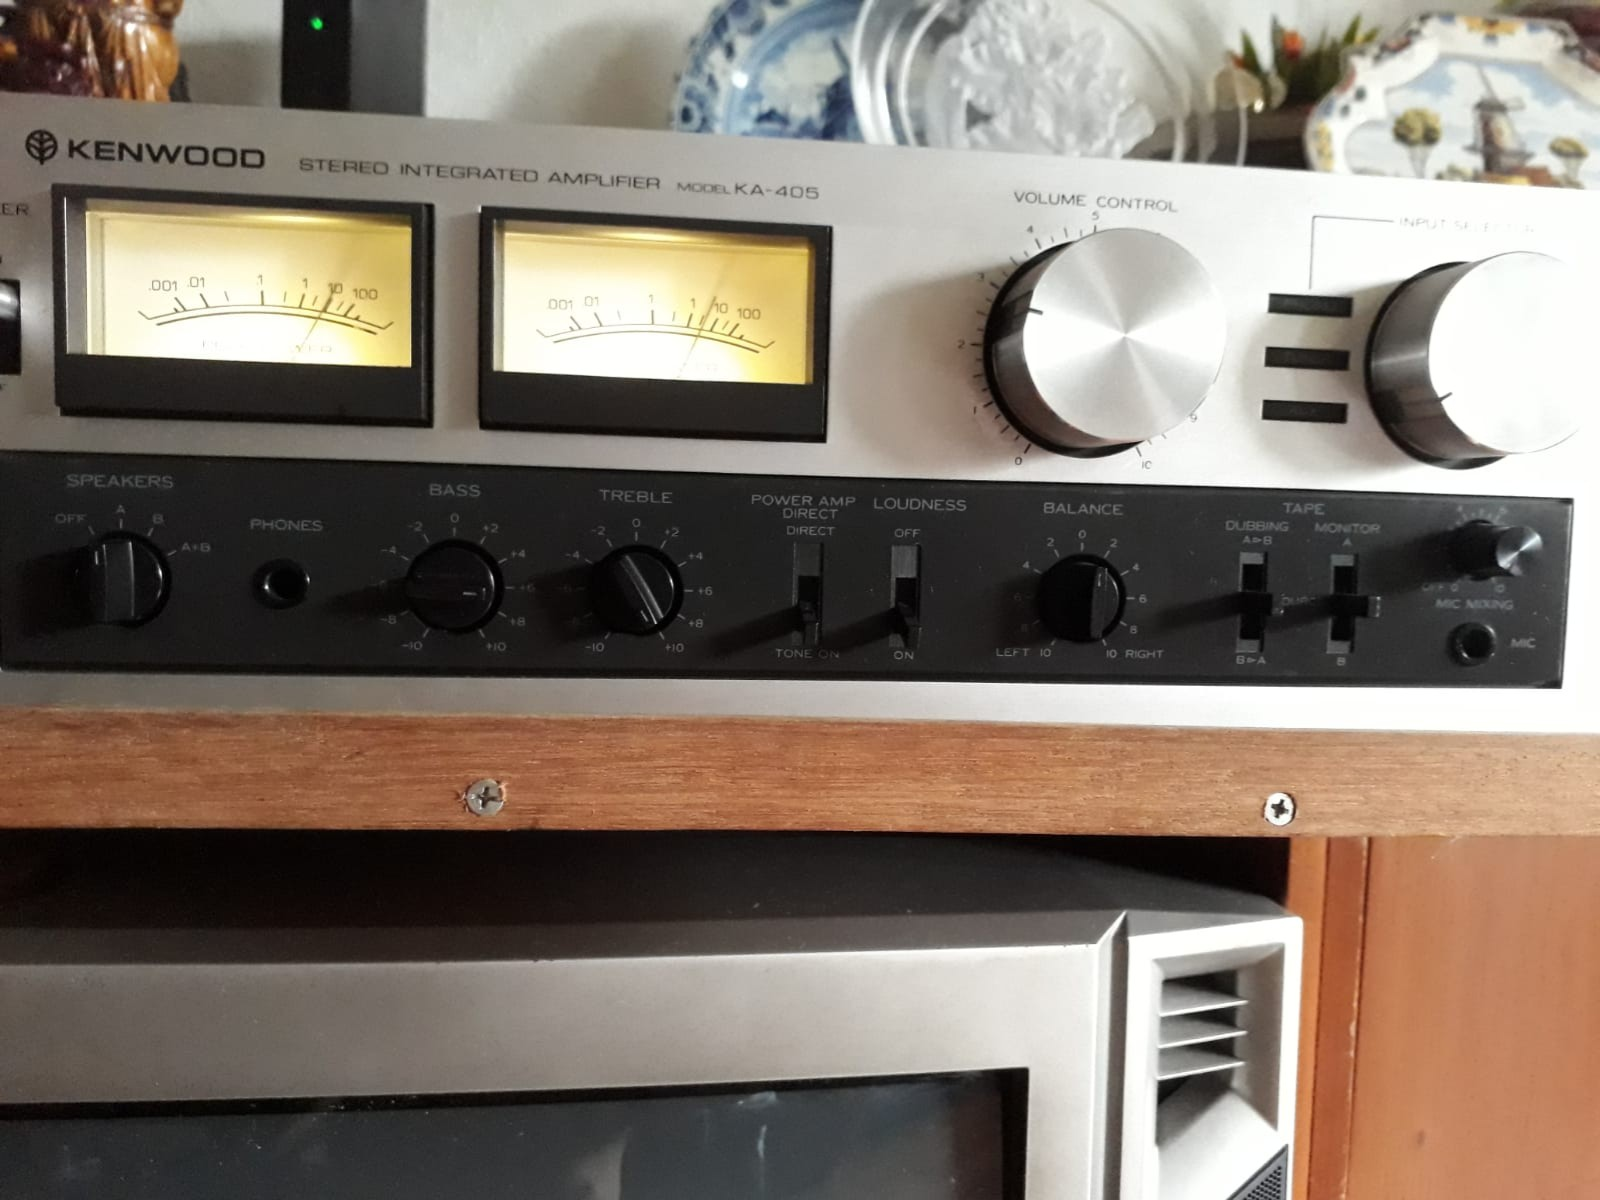 Kenwood amplifier with speakers, Electronics, Audio on Carousell